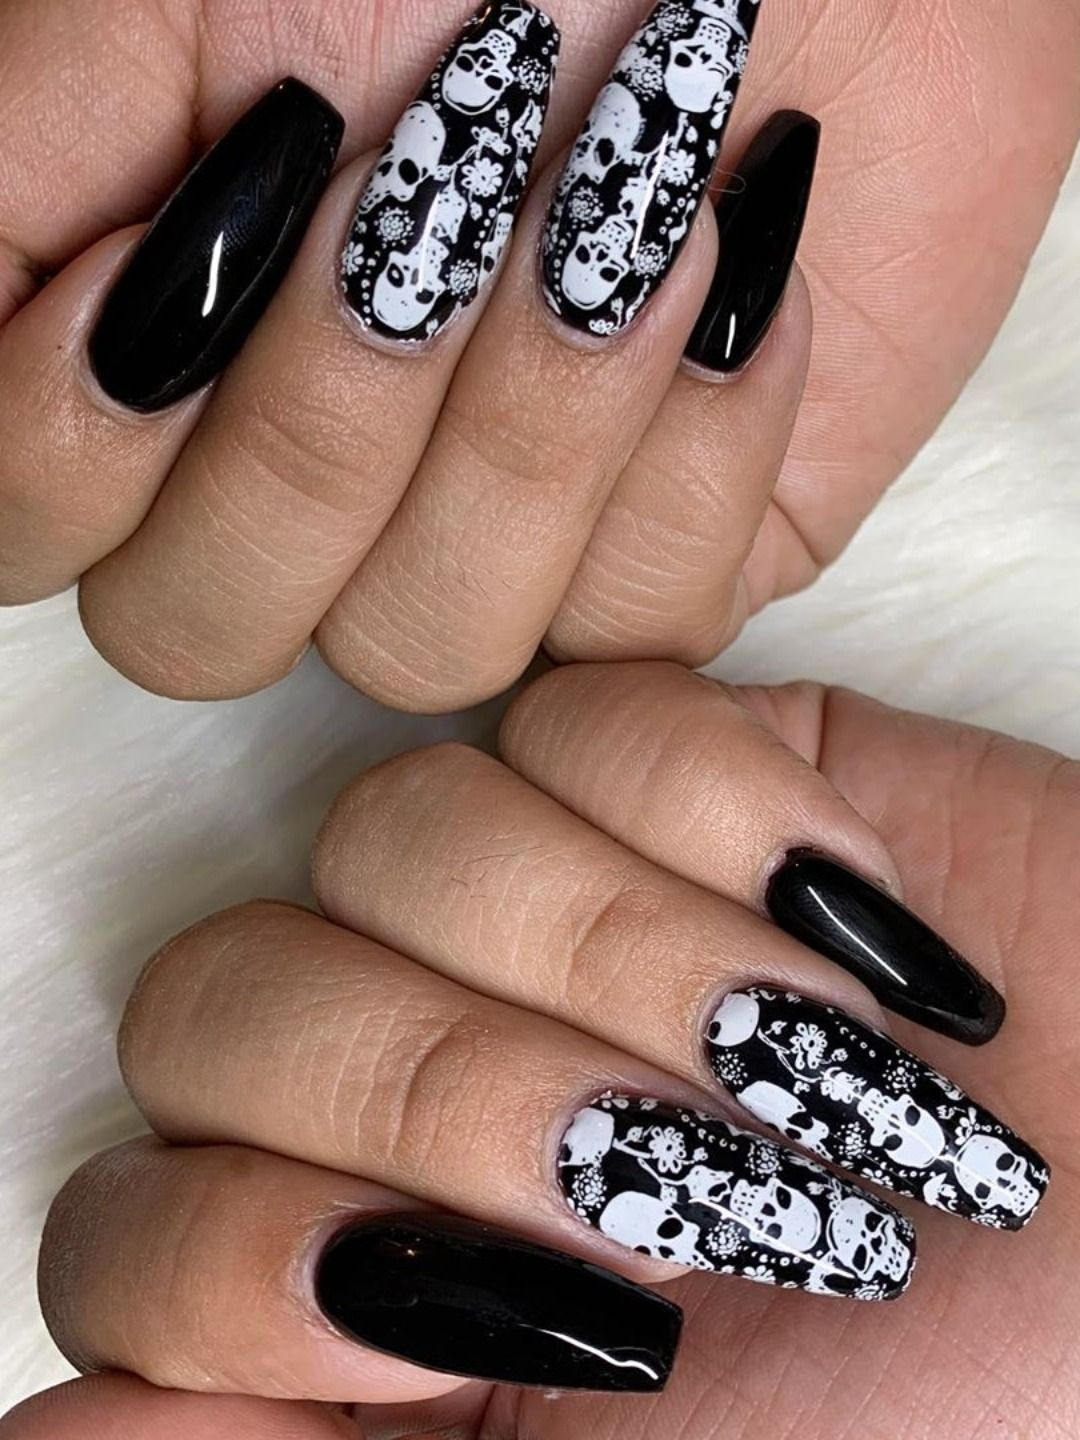 Halloween black coffin nails 2019! | Nails, Candy corn ...